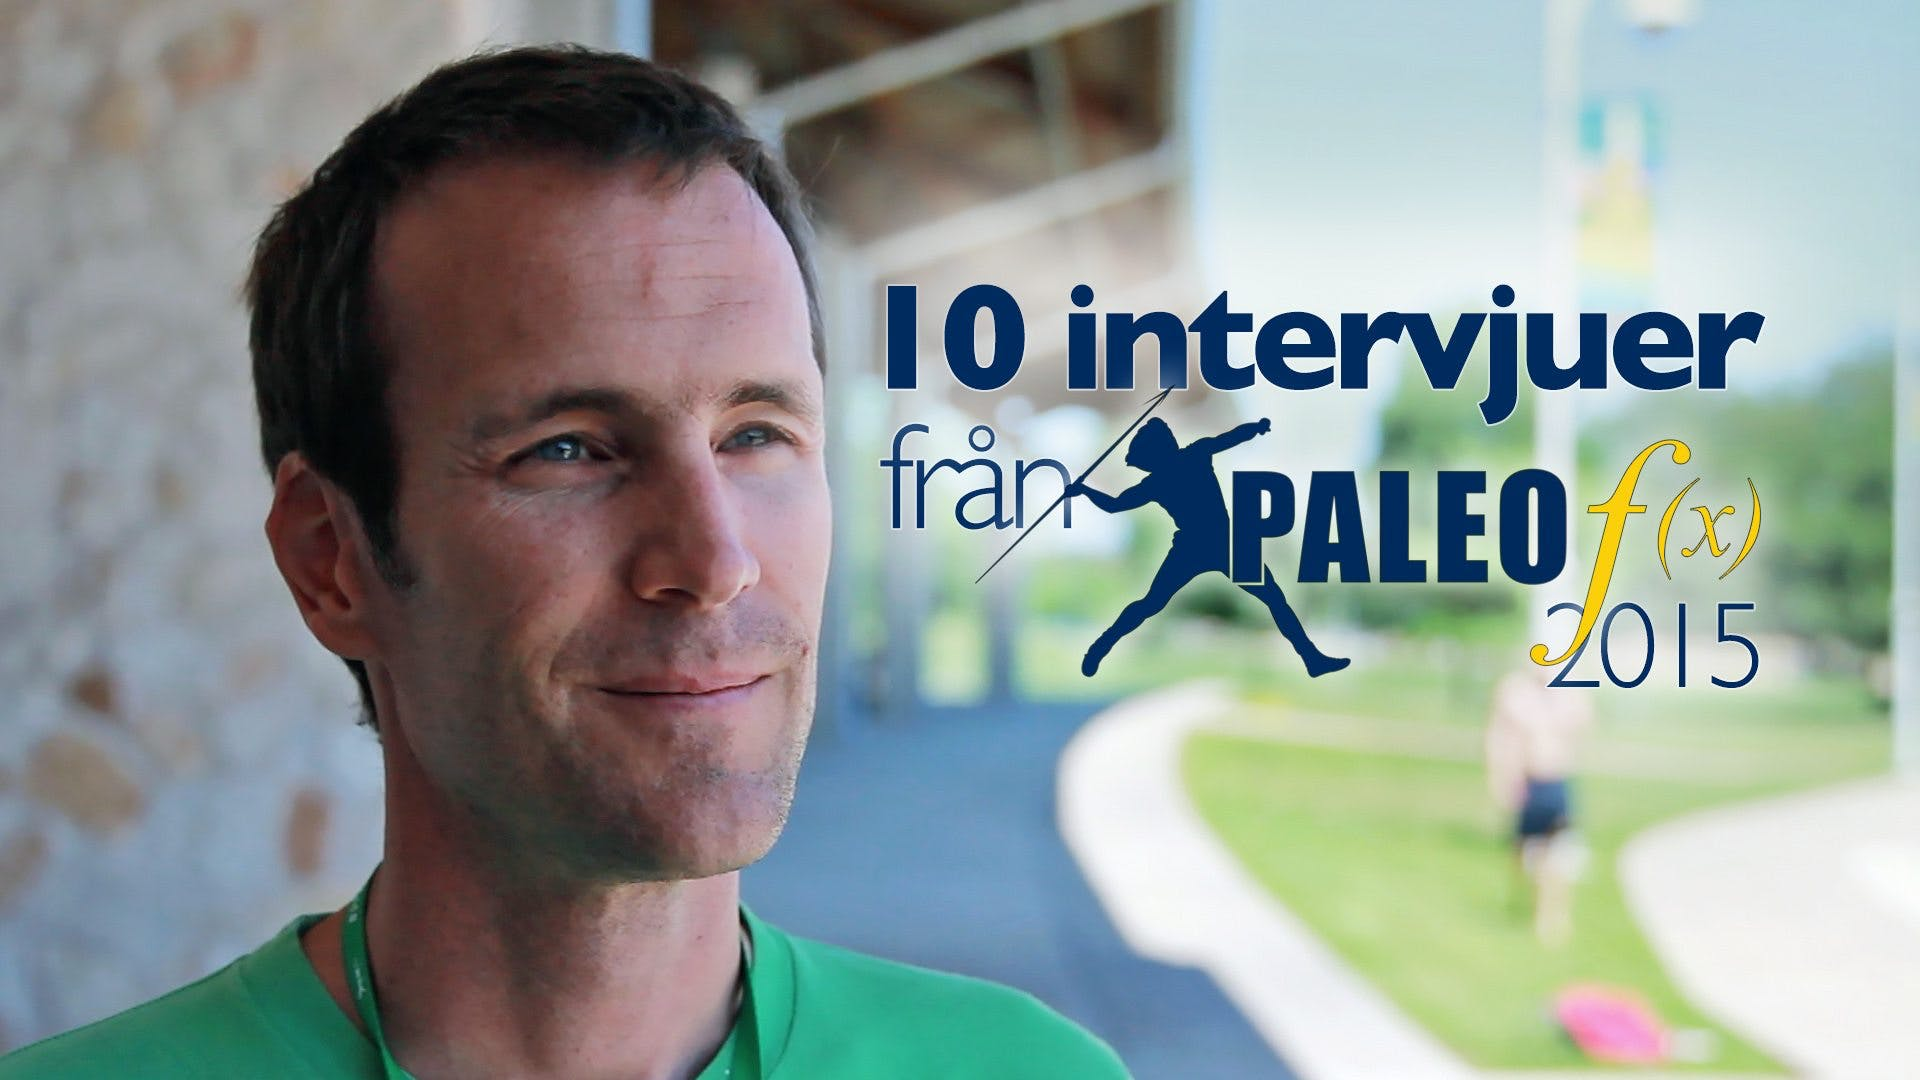 Full short interviews - Paleo f(x) Austin TX 2015